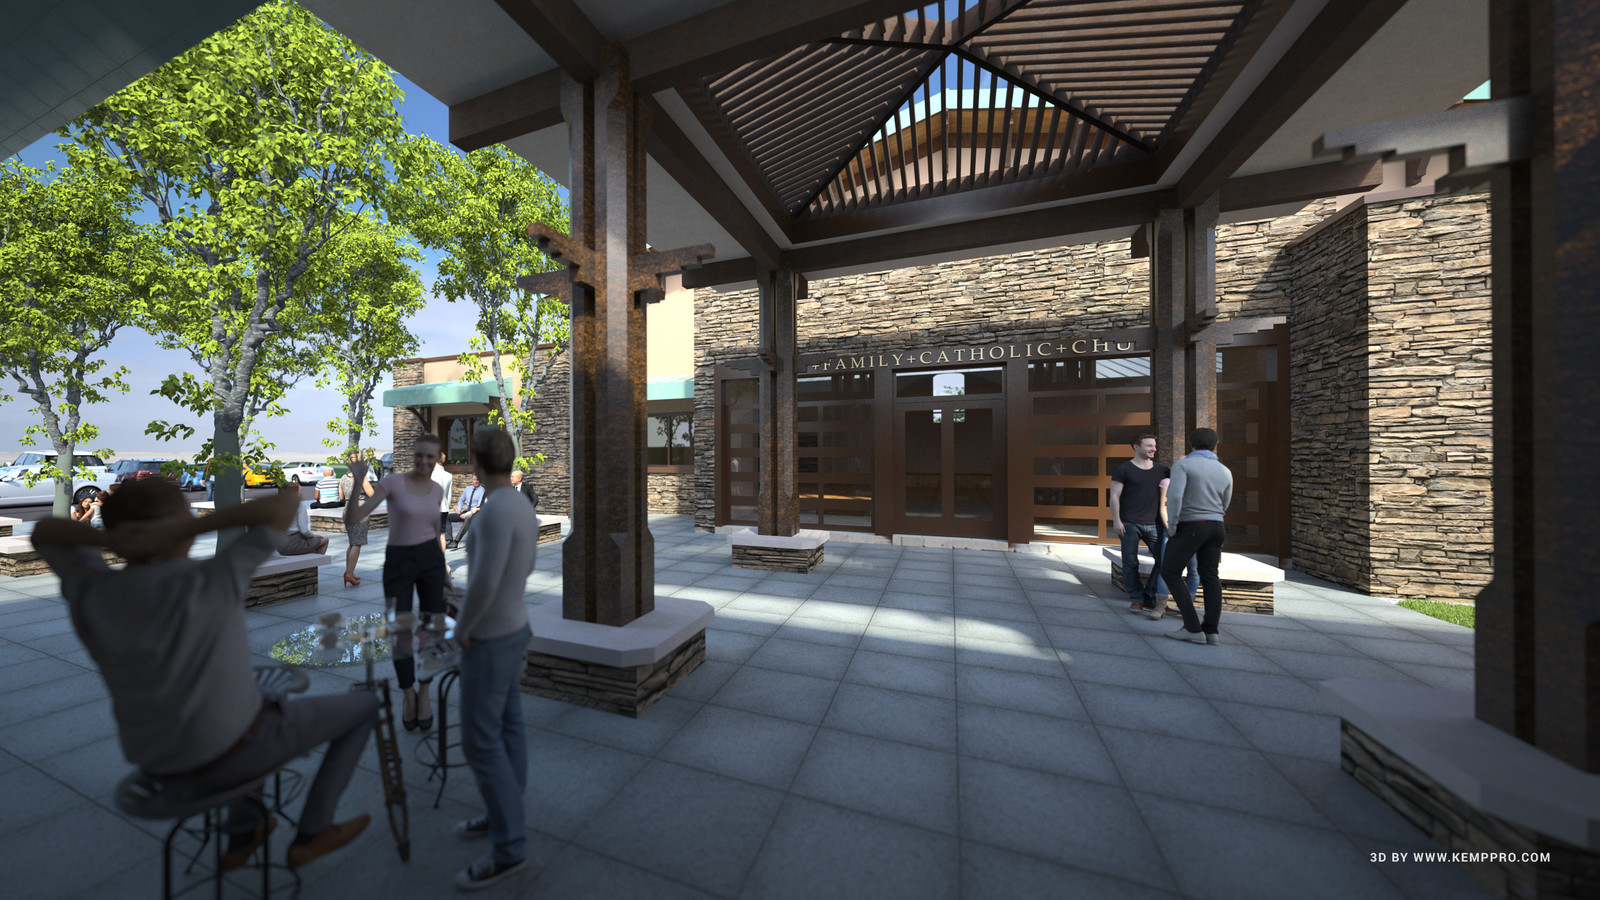 #SketchUp 2017 + #TheaRender  HFAC-CUP-Final-2nd-sky-Courtyard-DK-4_CK  The Holy Family Catholic Church, American Canyon, CA. Project  Architect: Liturgical Environs PC  HDR by HDRI-SKIES found here: http://hdri-skies.com/shop/hdri-sky-162/